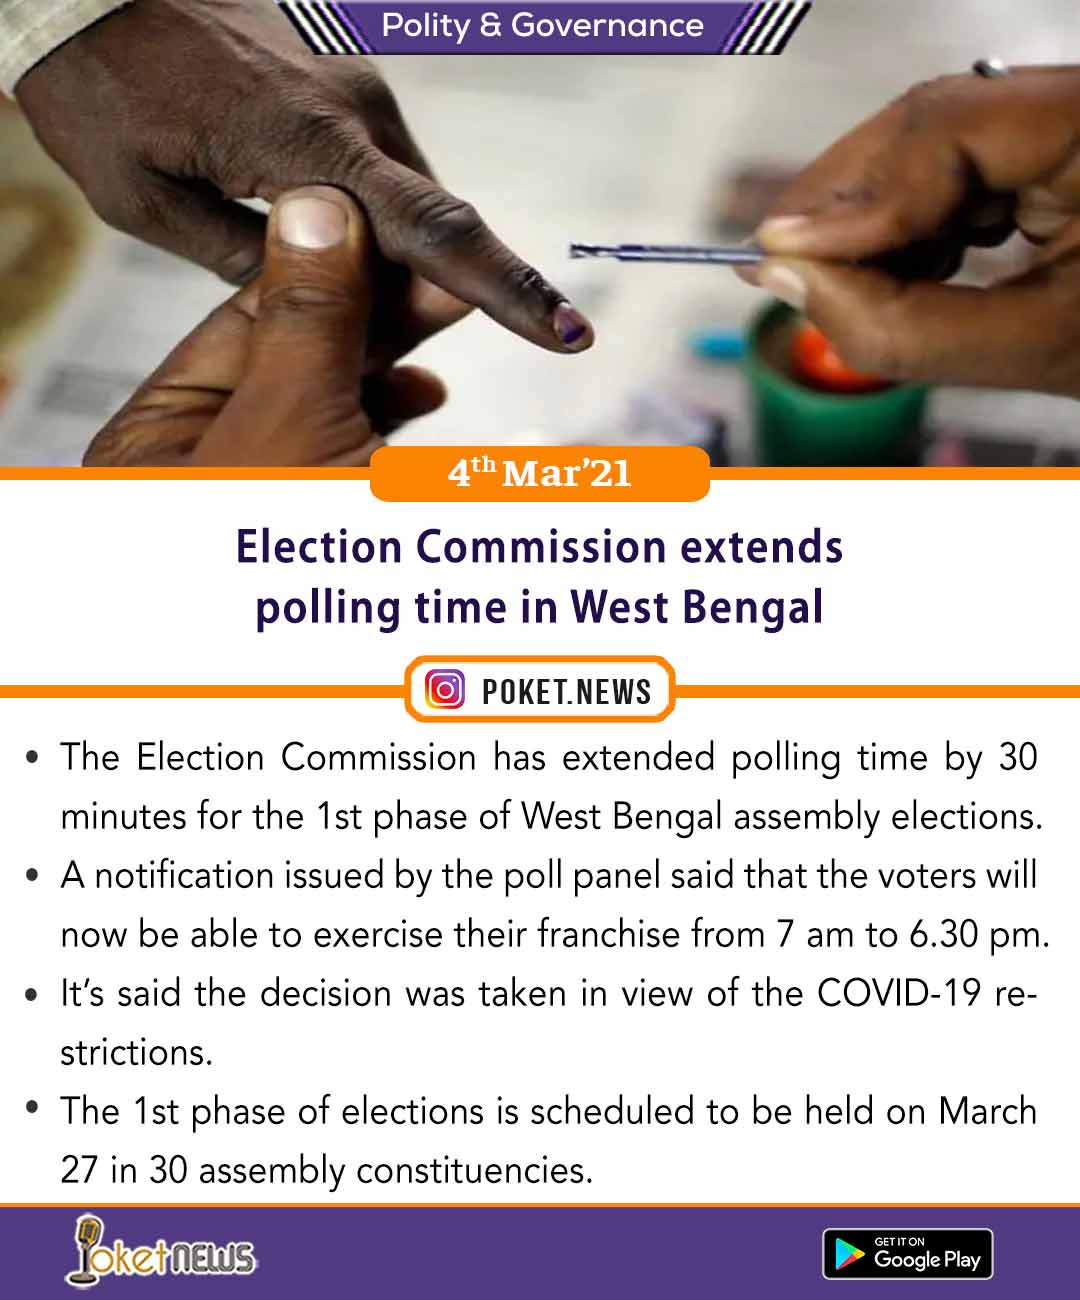 Election Commission extends polling time in West Bengal